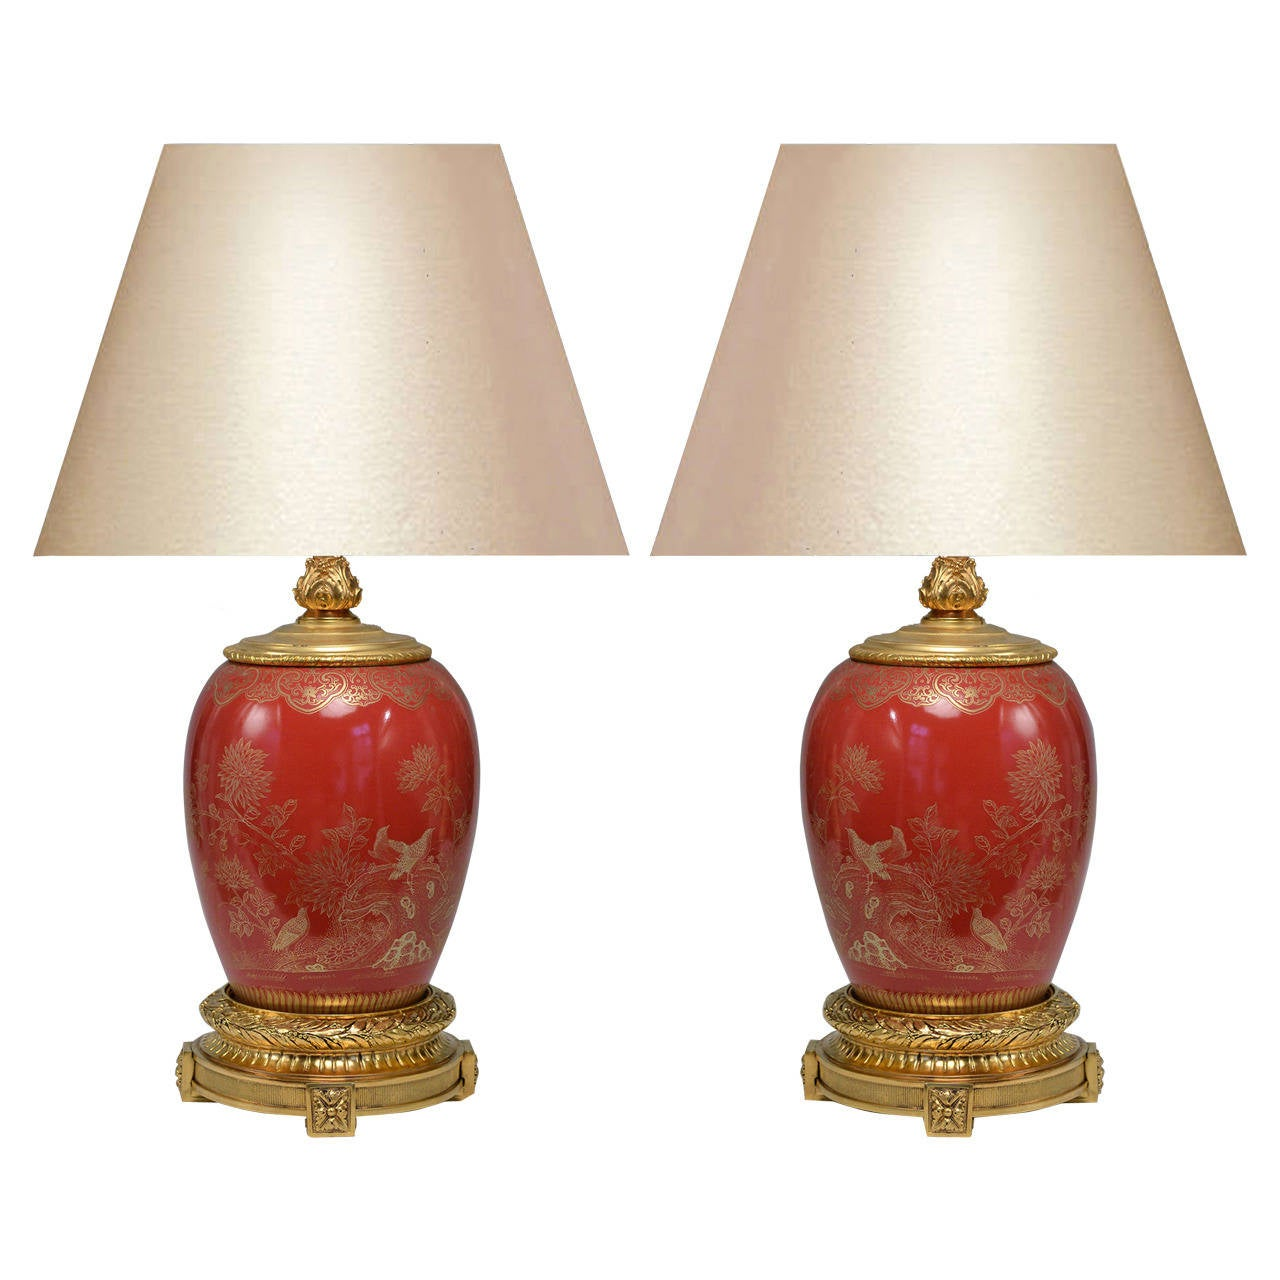 pair of ormolu mounted red porcelain lamps for sale at 1stdibs. Black Bedroom Furniture Sets. Home Design Ideas